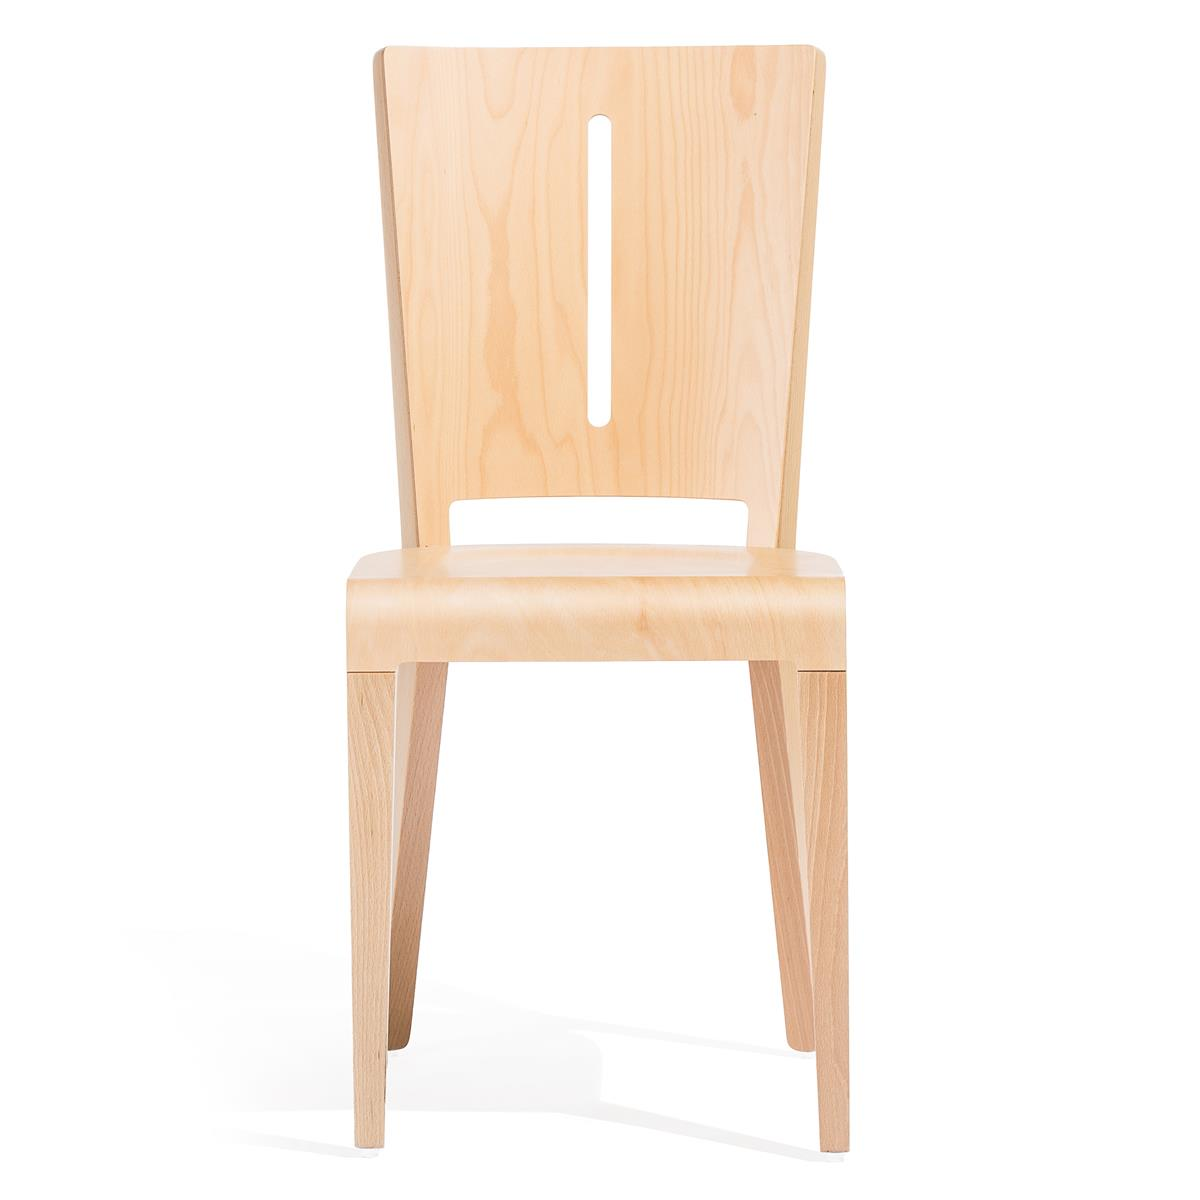 Wooden moon chairs - Chair Era